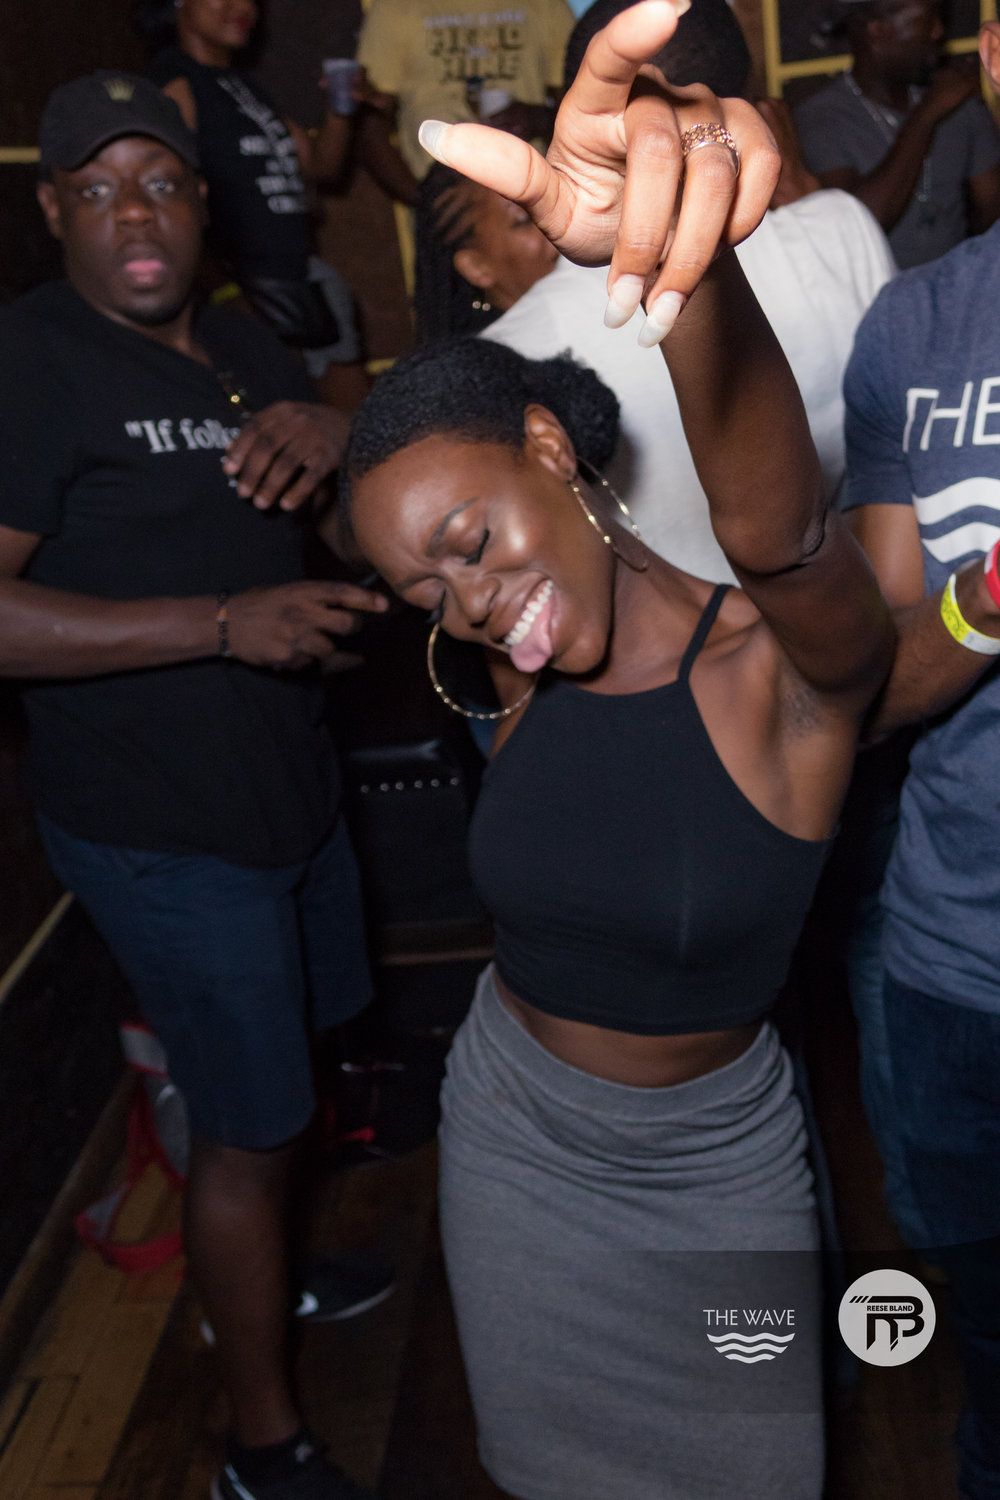 RB-WaveDC-BlkBarCrawl2-01606.jpg